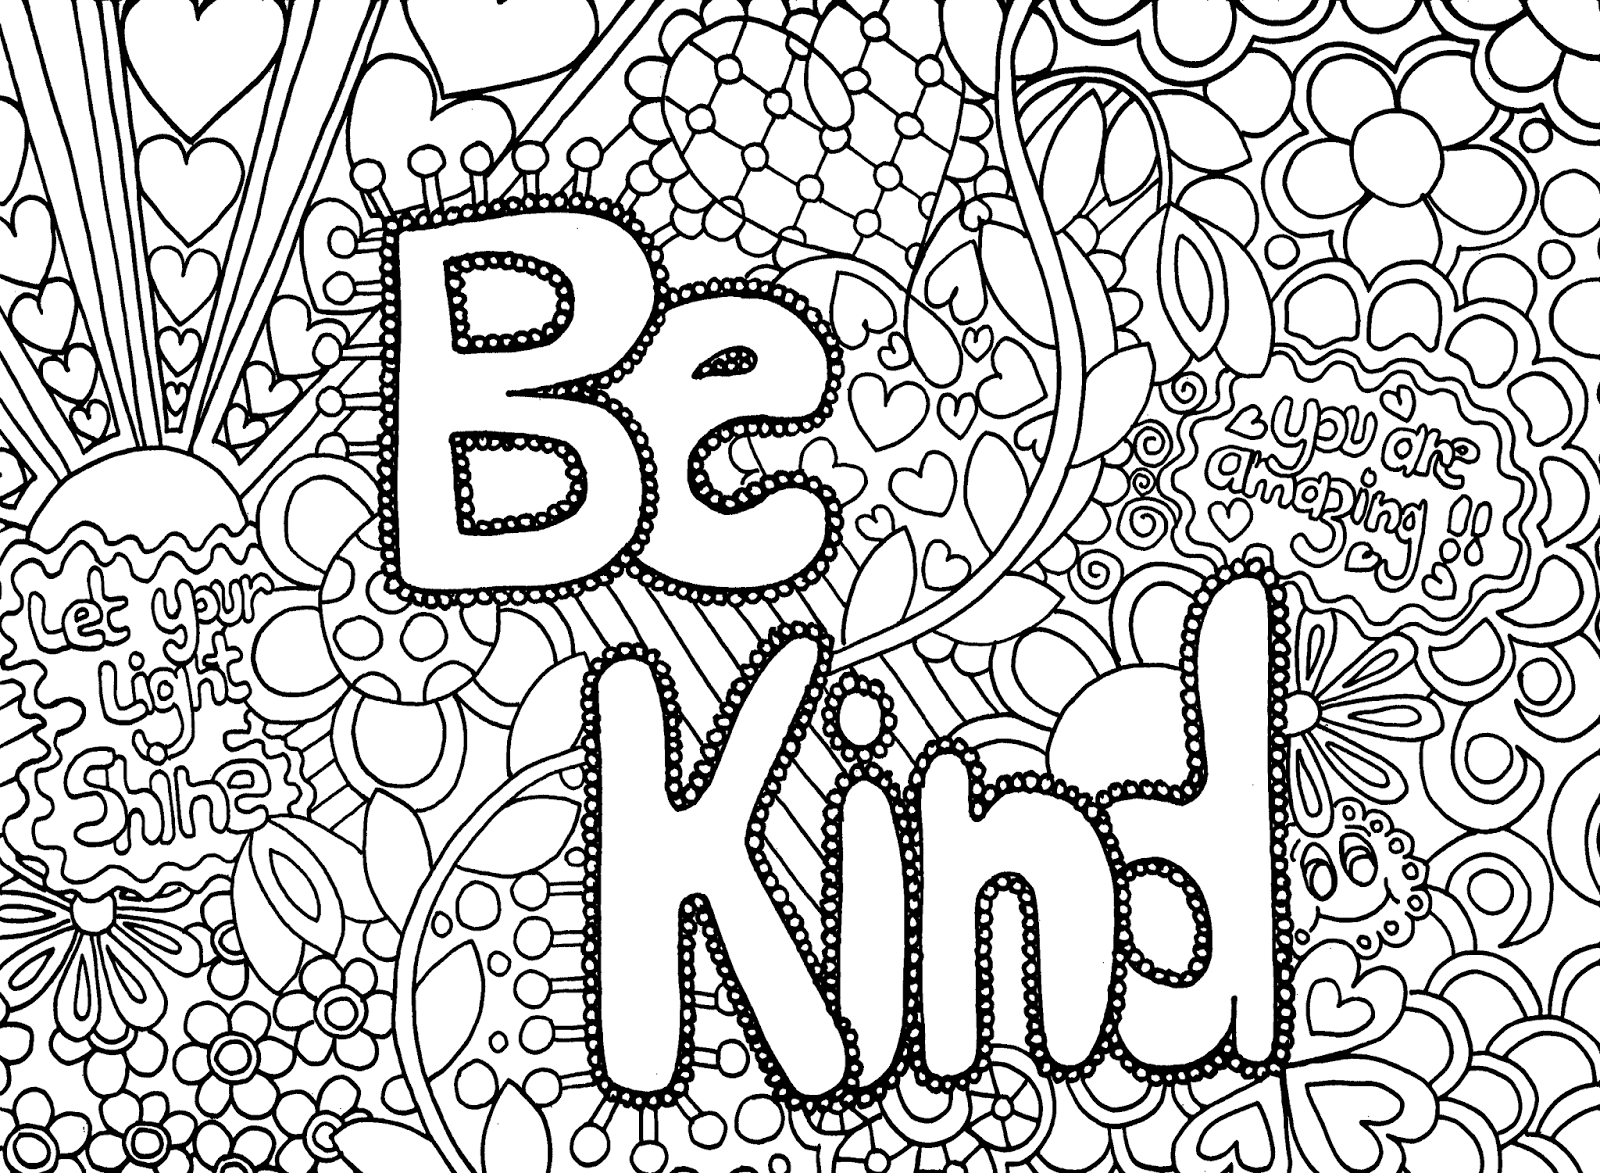 Cool Colouring Pictures   Coloring Pages For Kids And For Adults ...